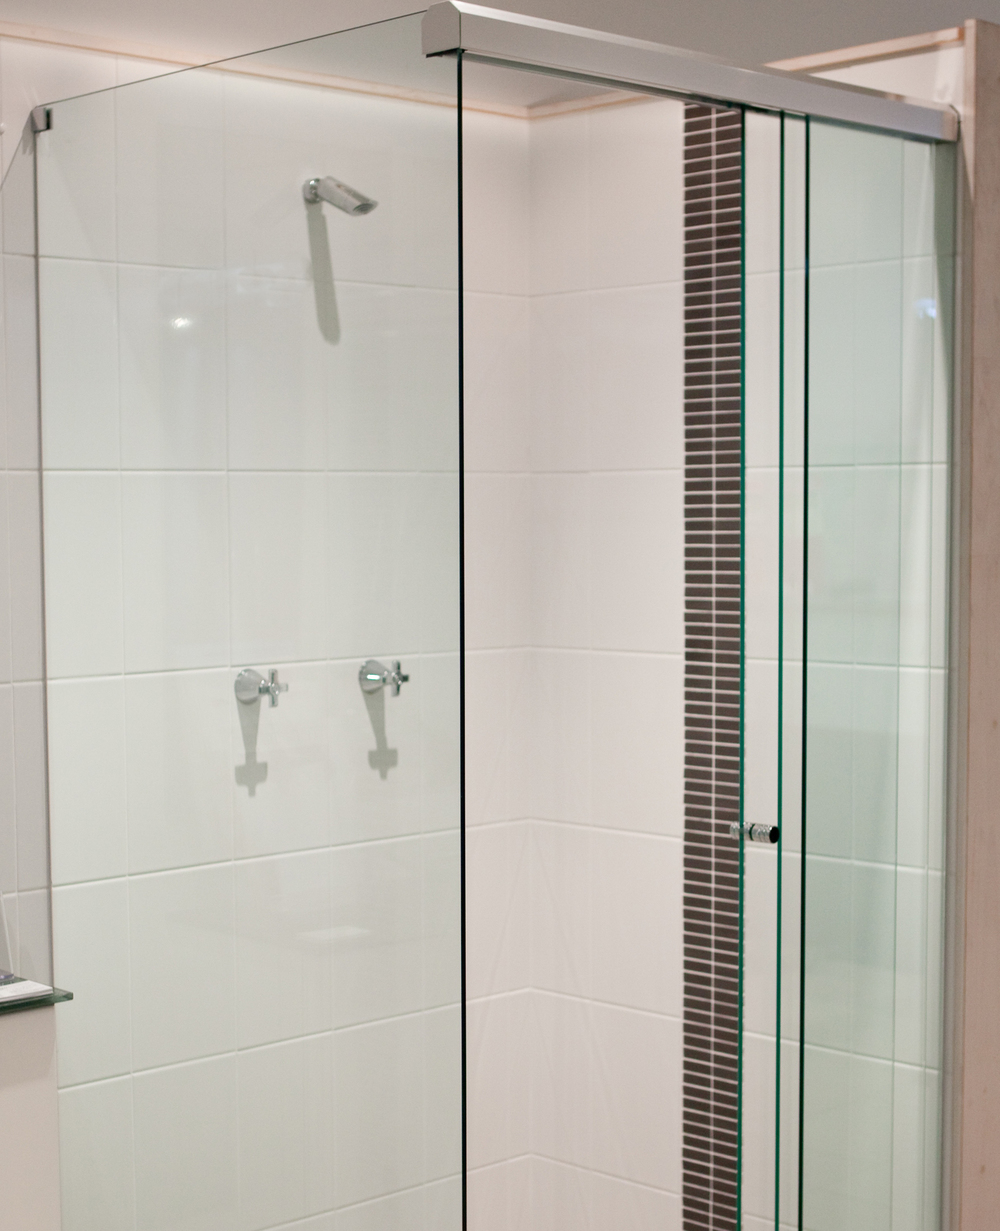 melbourne-glass-group-showers5.jpg